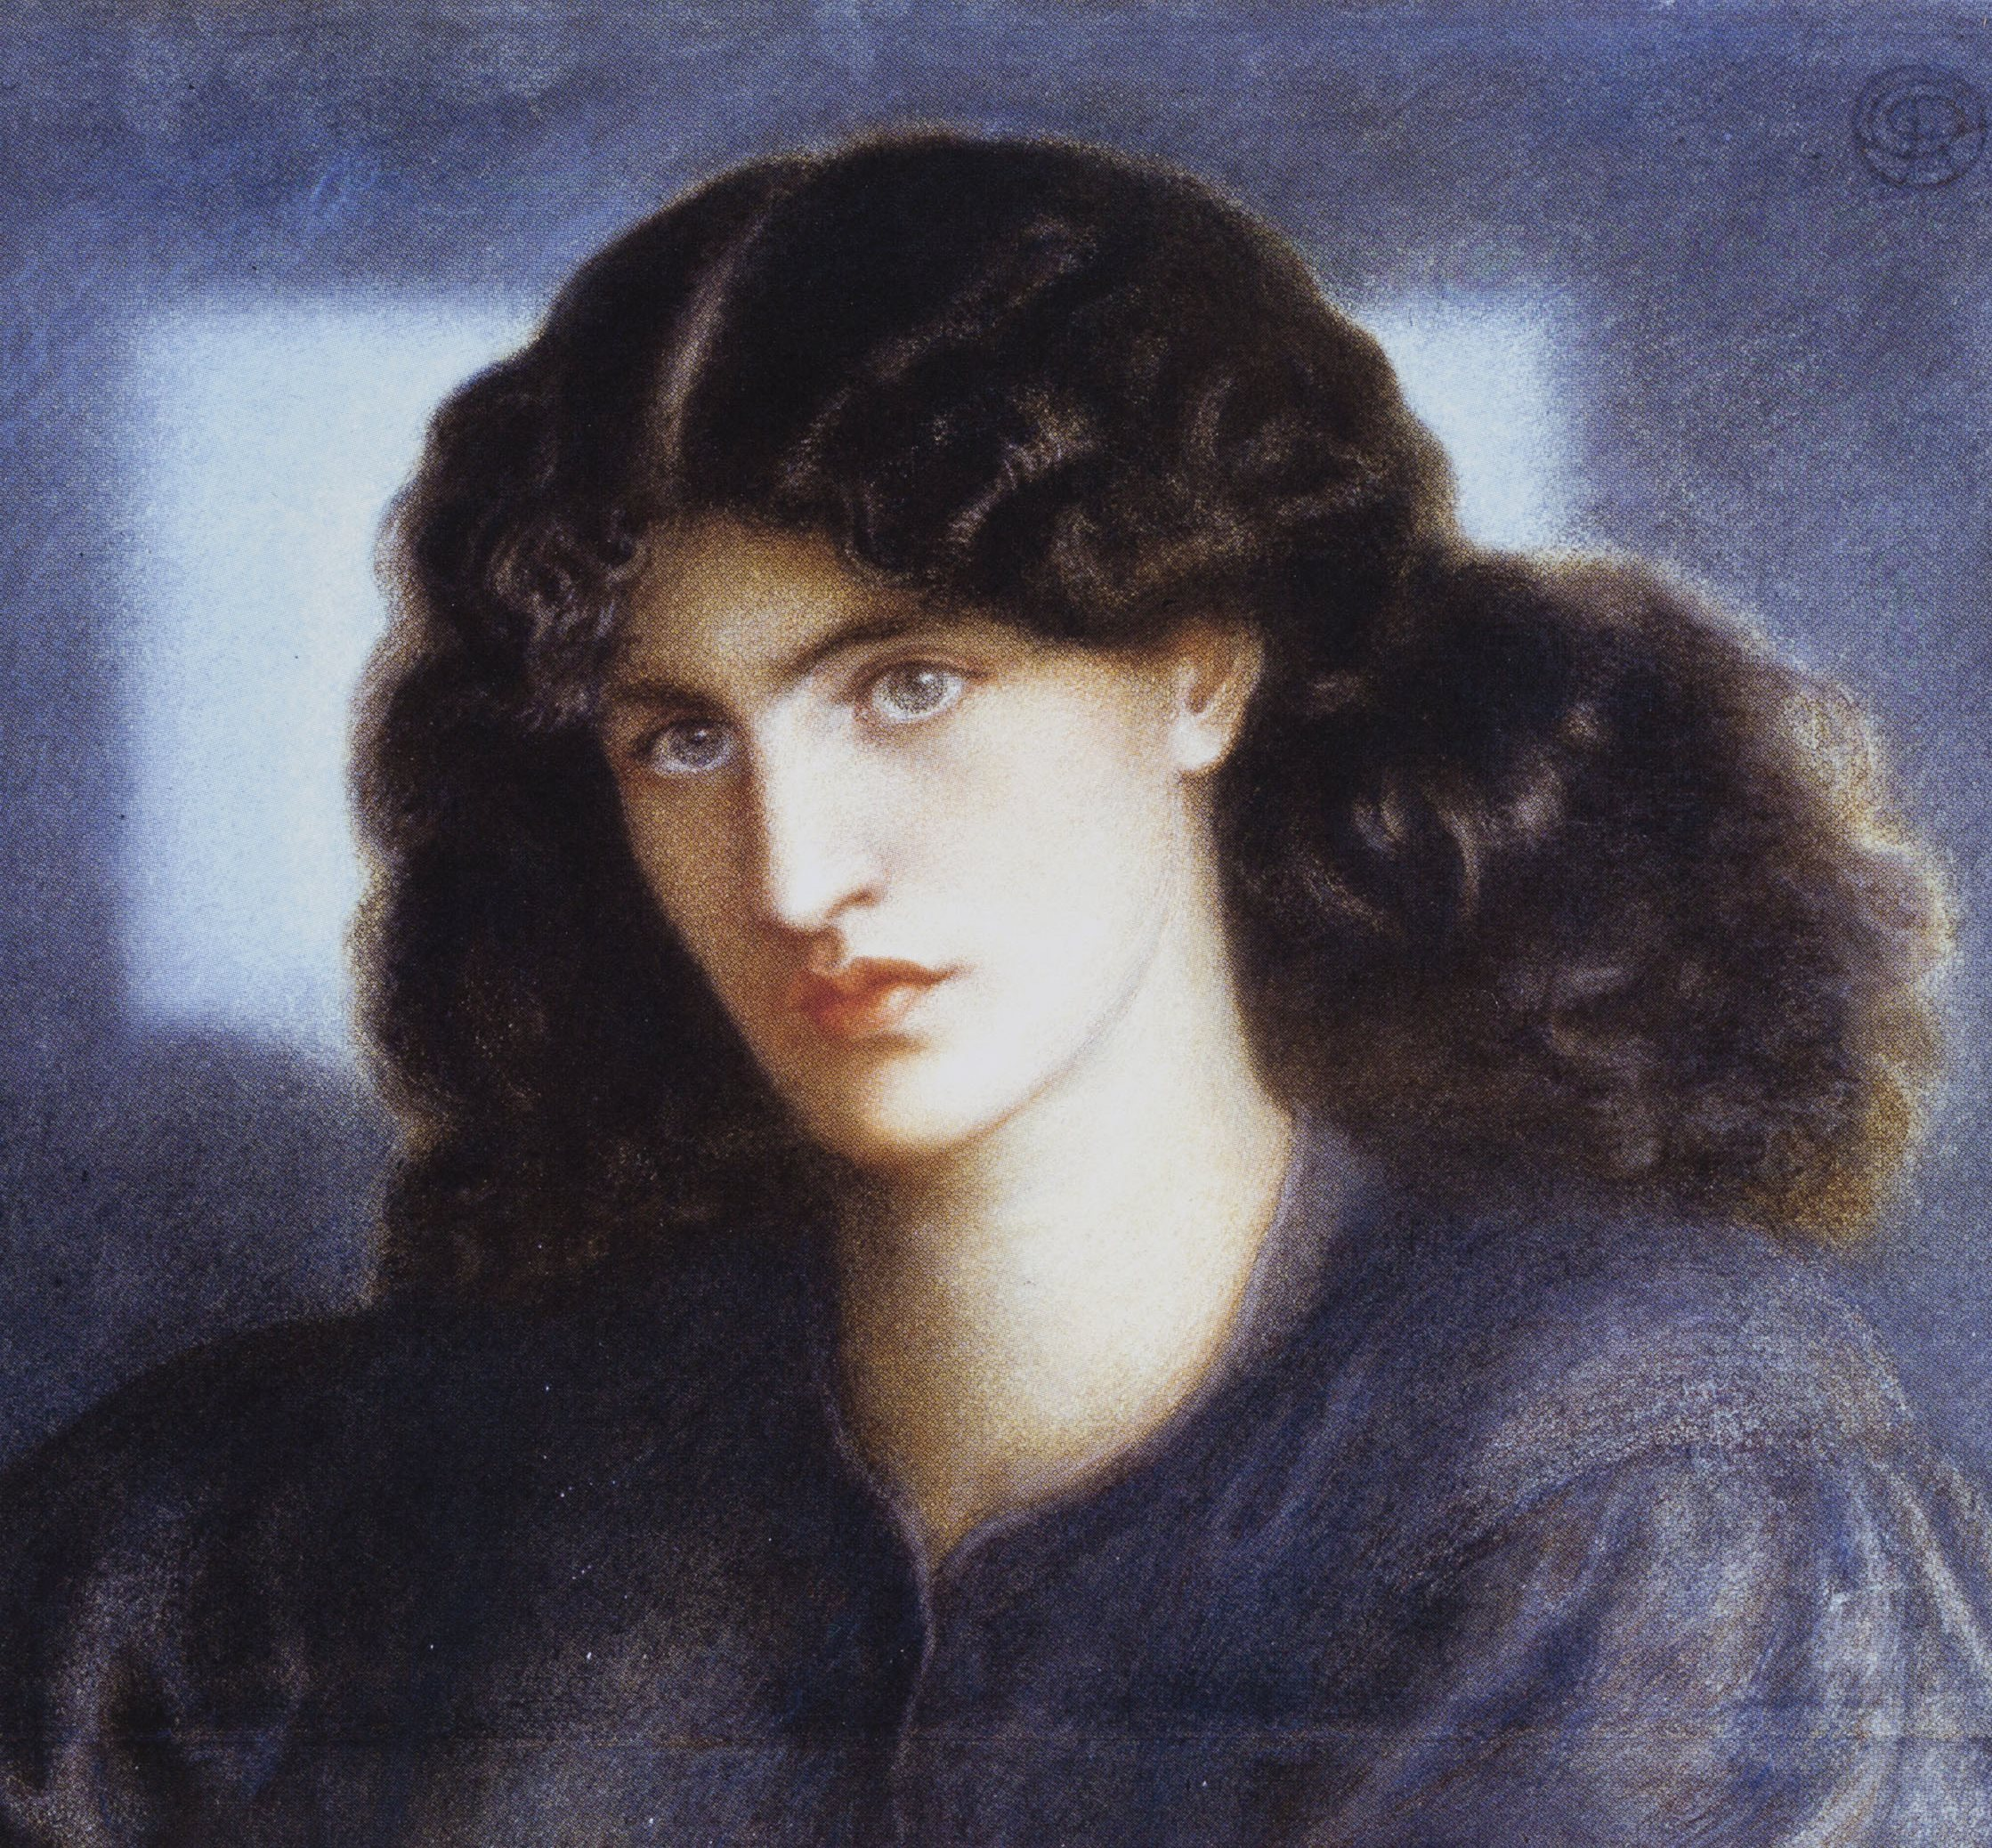 Dante Gabriel Rosetti, La Donna della finestra (Portrait of Jane Morris ), 1870. Museums and Galleries, City of bradford MDC